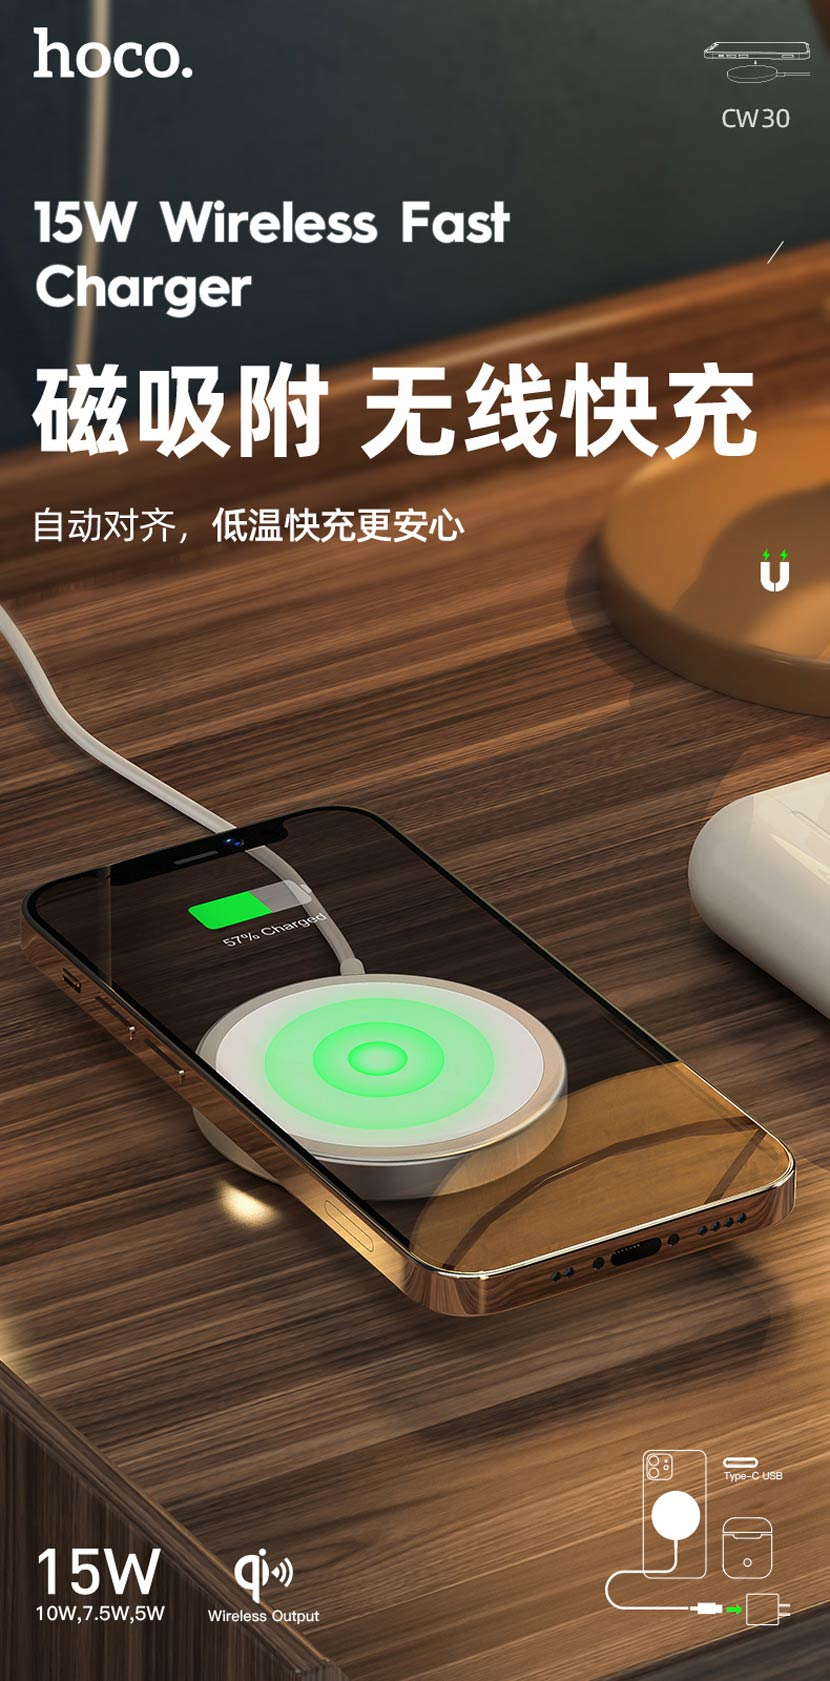 hoco news cw30 original series magnetic wireless fast charger cn